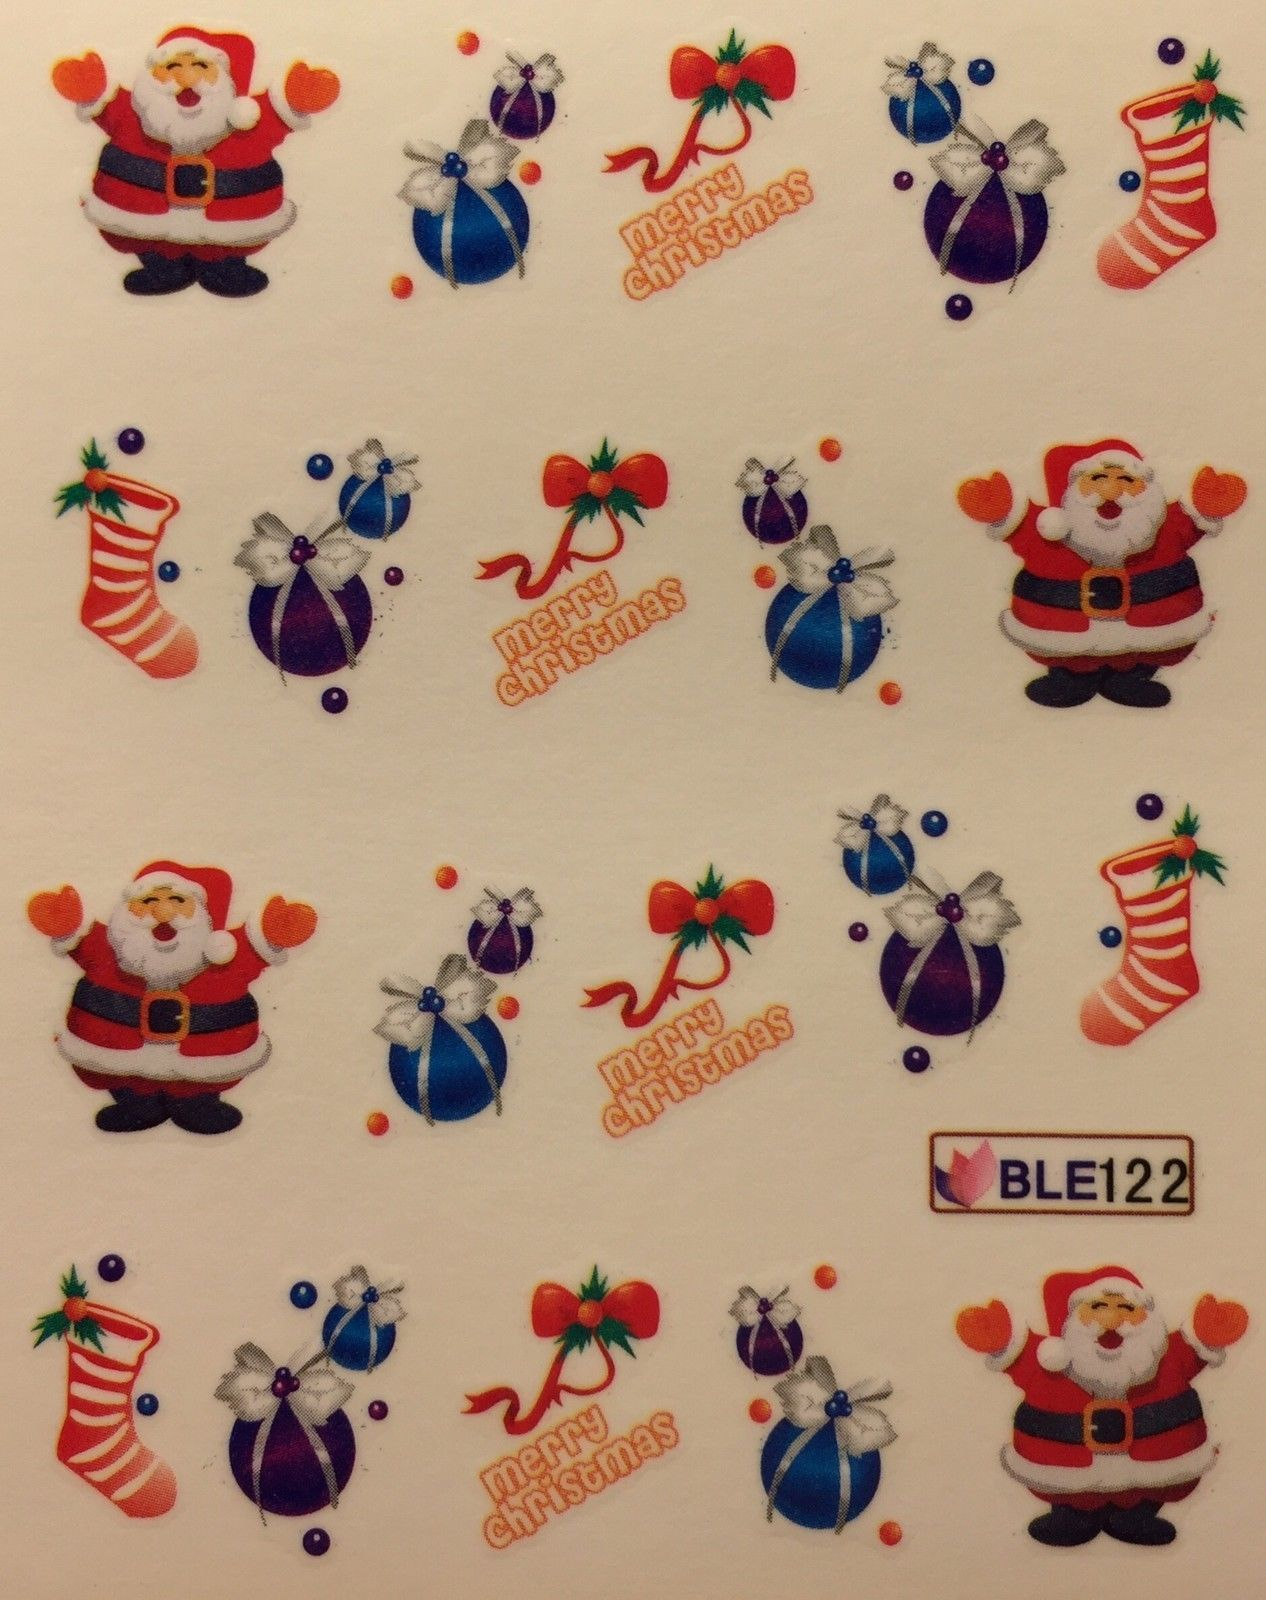 BANG STORE Nail Art Water Decals Merry Christmas Santa Ornament Stocking Holiday